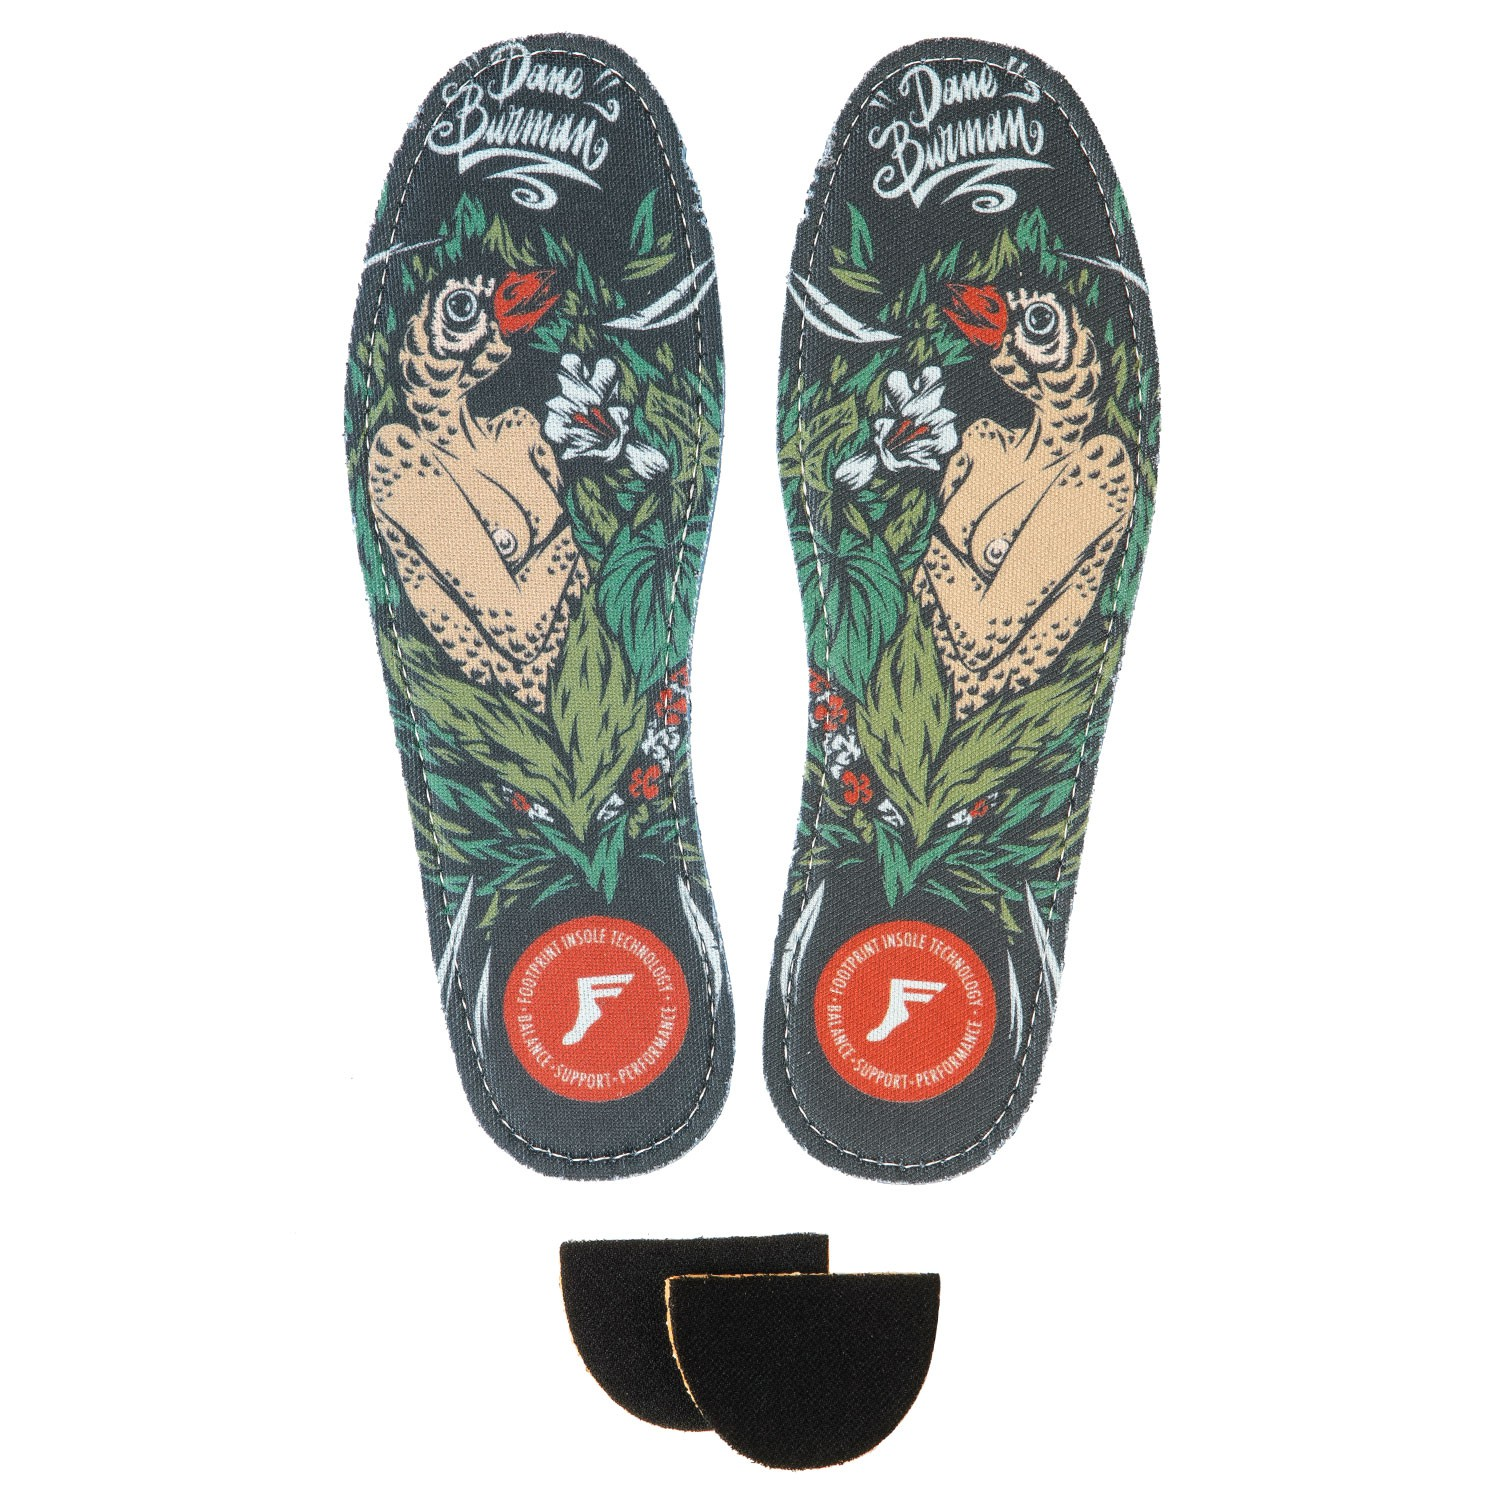 Footprint High Profile Kingfoam Insoles